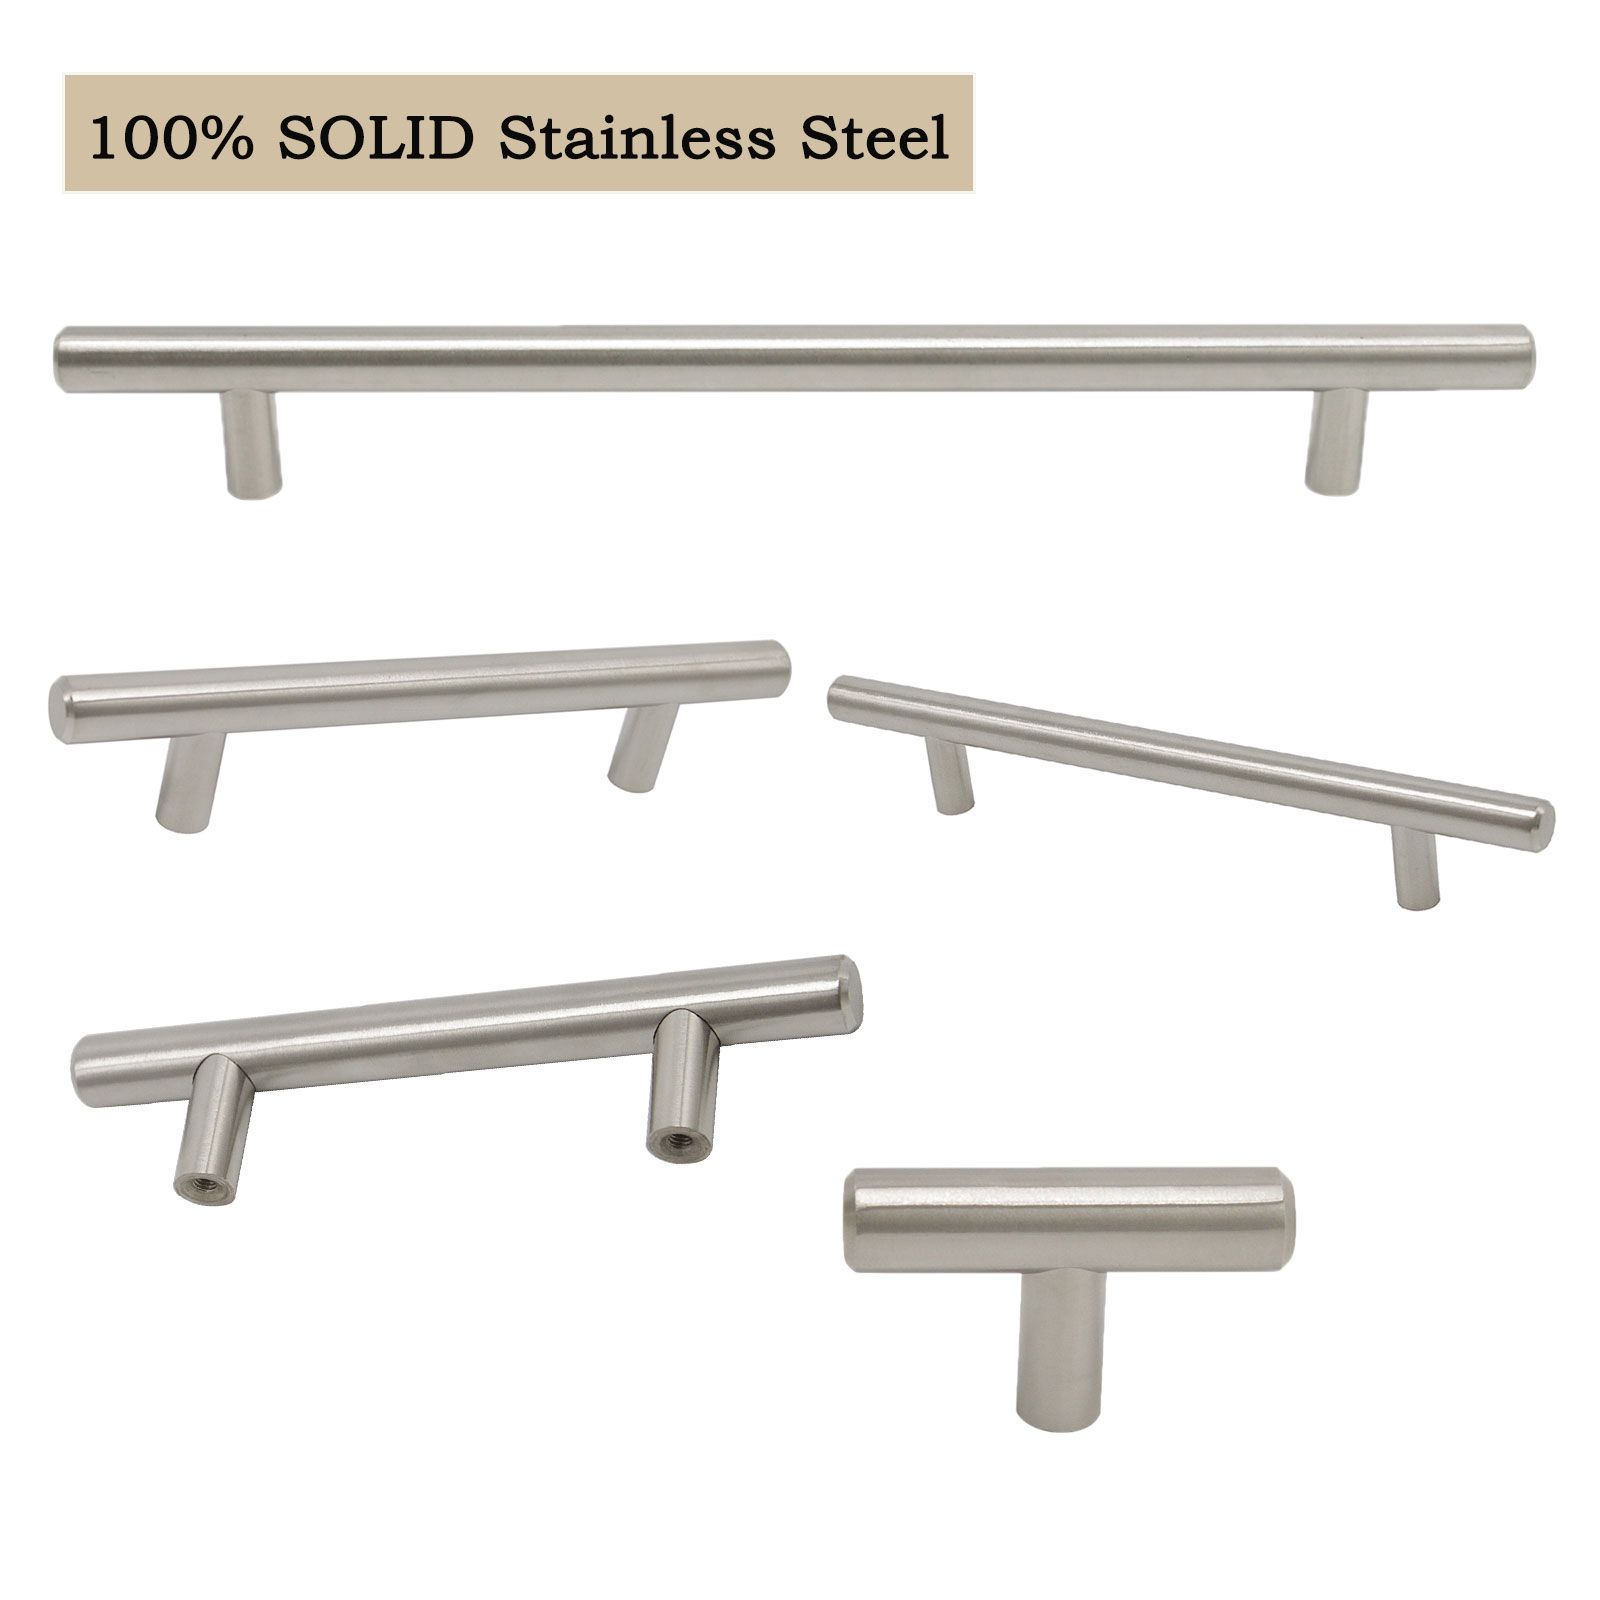 Solid Handles For Kitchen Cabinets 2 10 Hole Centers Drawer Pulls Pd201sss Kitchen Cabinet Handles Cabinet Handles Drawer Hardware